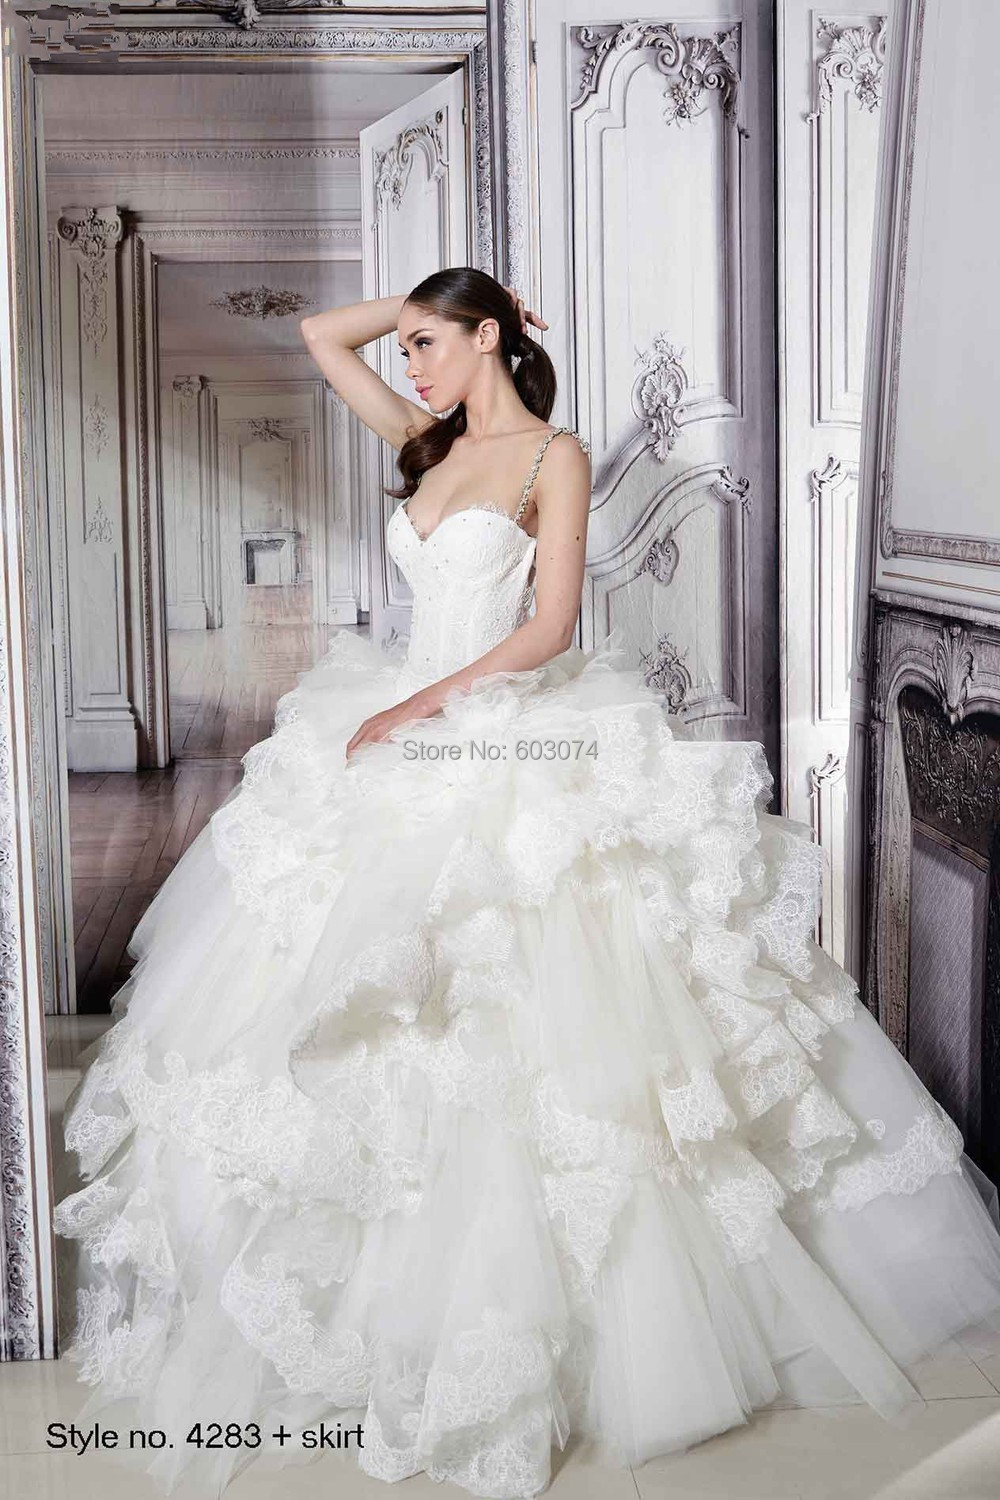 Consignment wedding dresses calgary ab picture ideas references consignment wedding dresses calgary ab wedding dress separate train ombrellifo Image collections